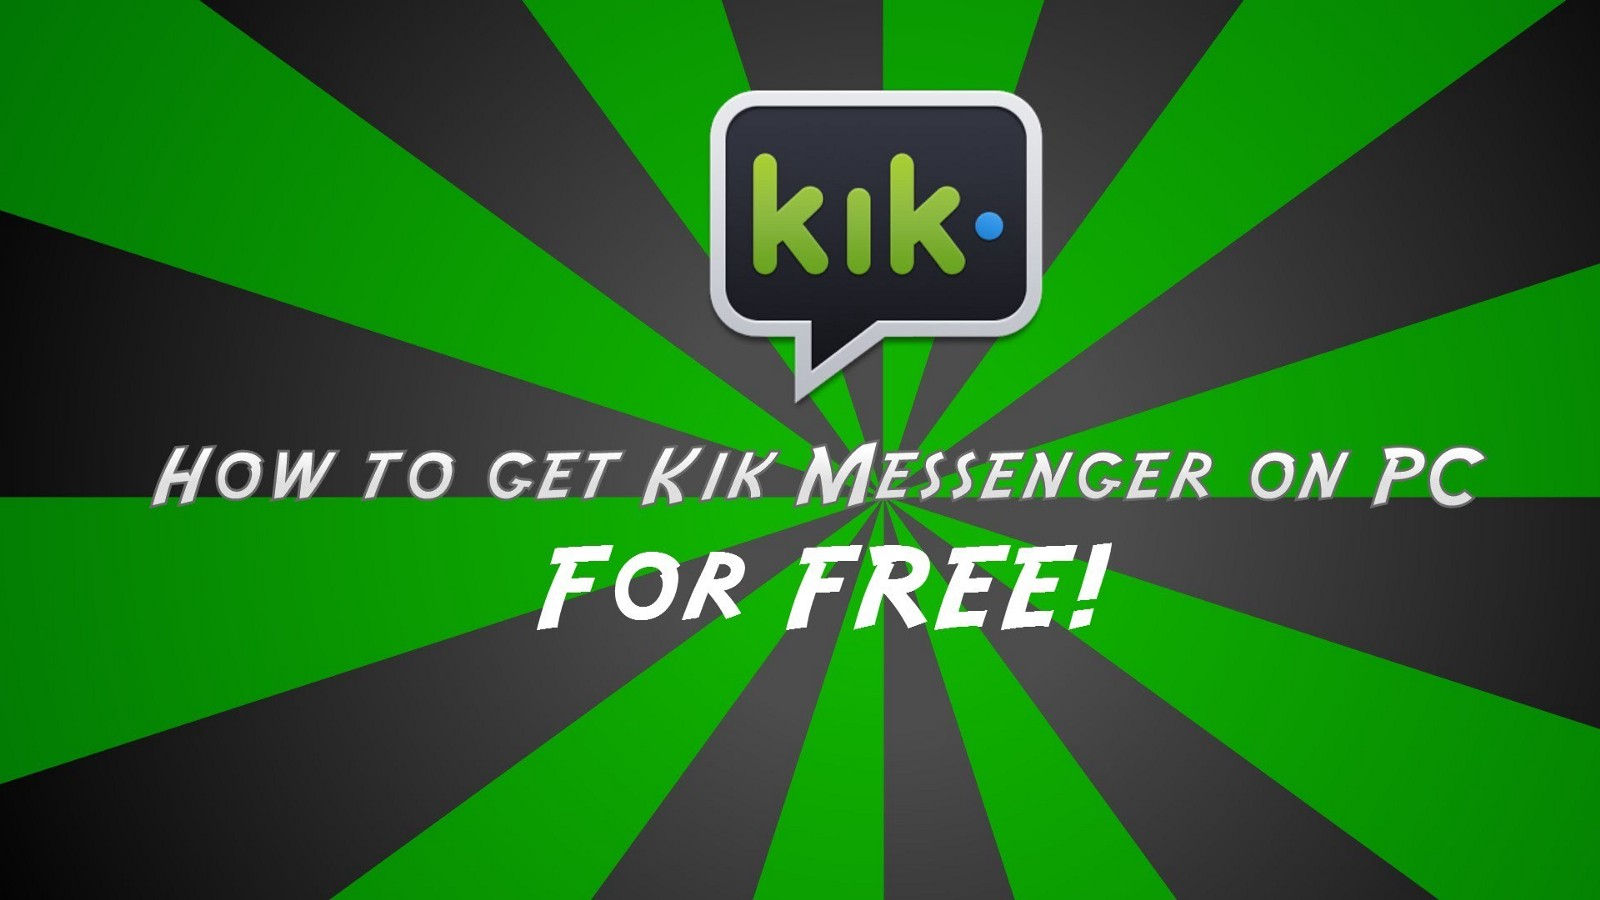 download kik messenger for pc windows 10